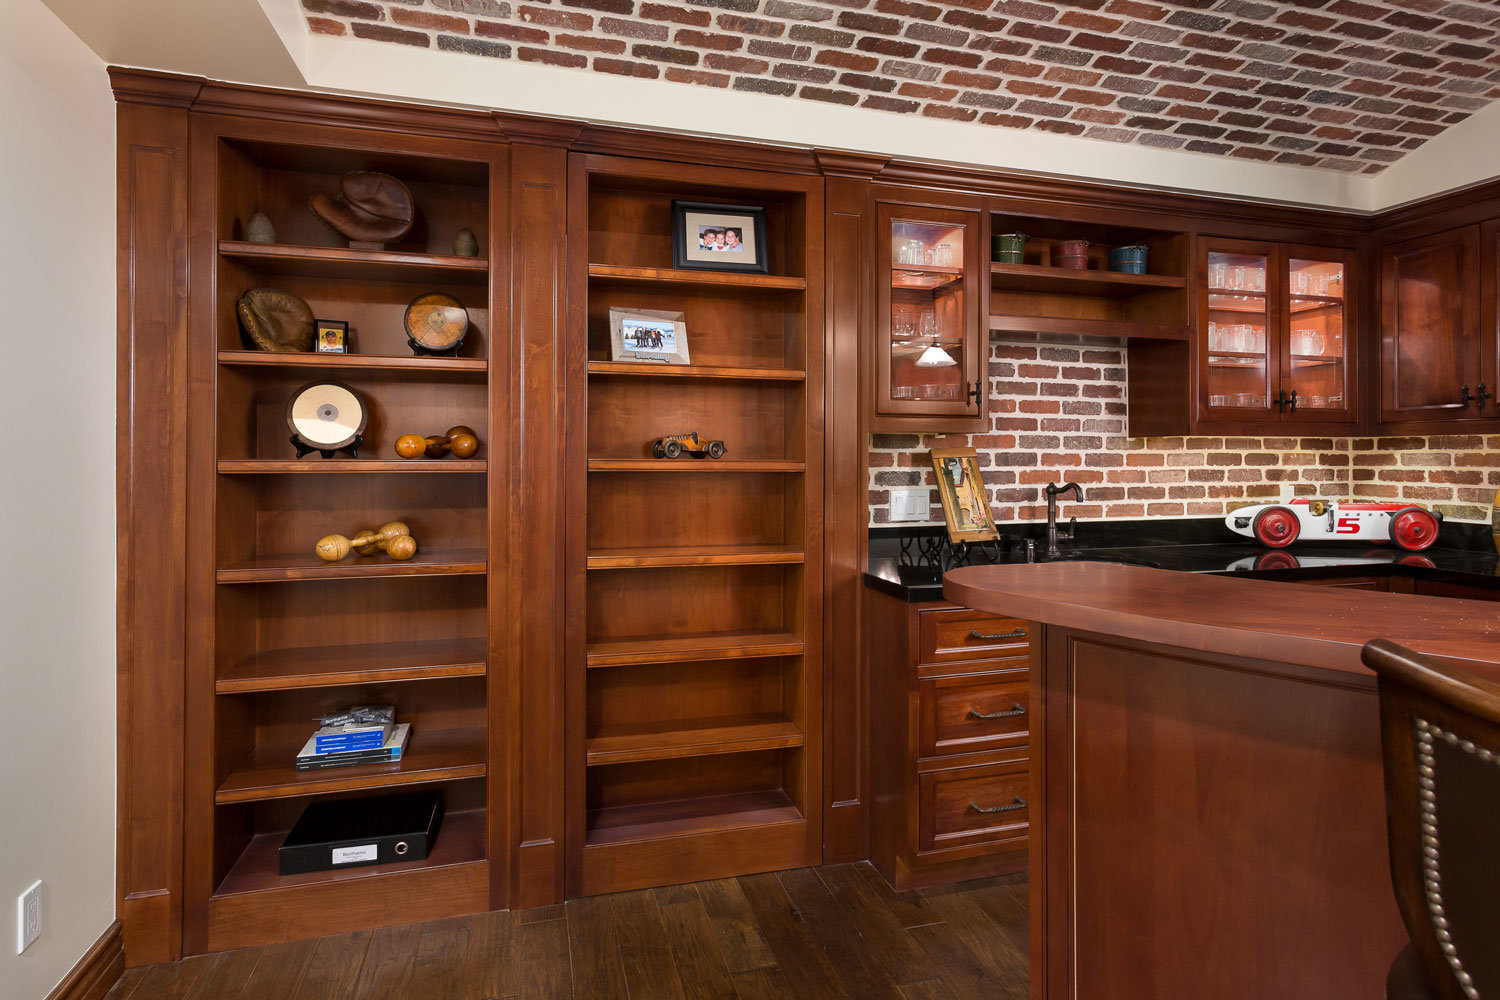 Chelsea-bookcase-bar-builtin-hiddenpassage.jpg